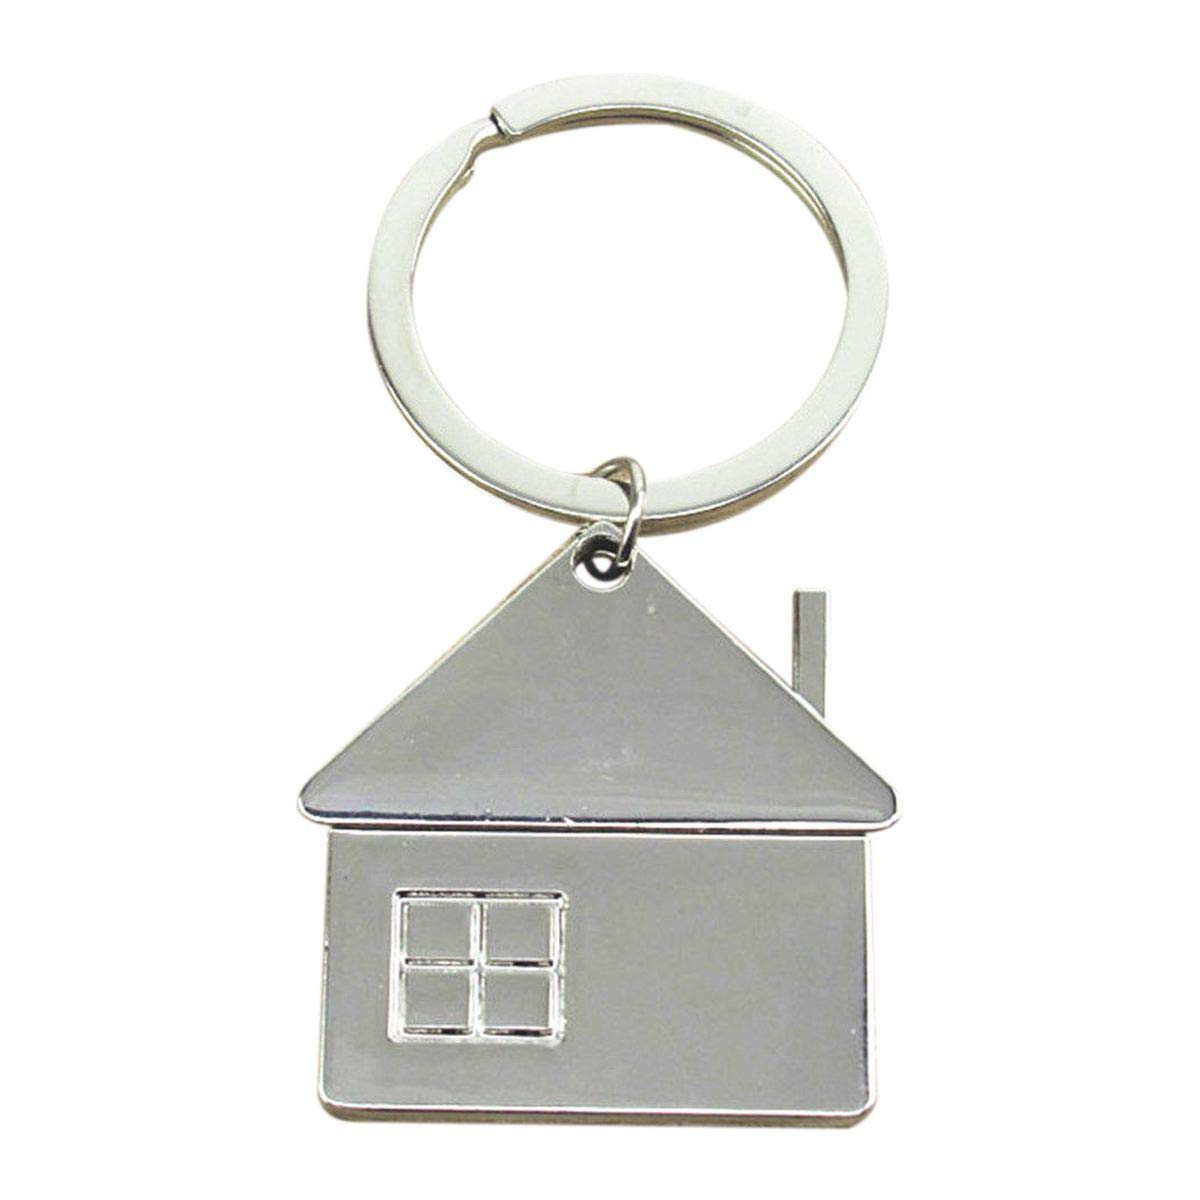 TOOGOO House Home Keyring Metal Pendant Keyfob Chrome Key Bag Chain Wedding Gift New